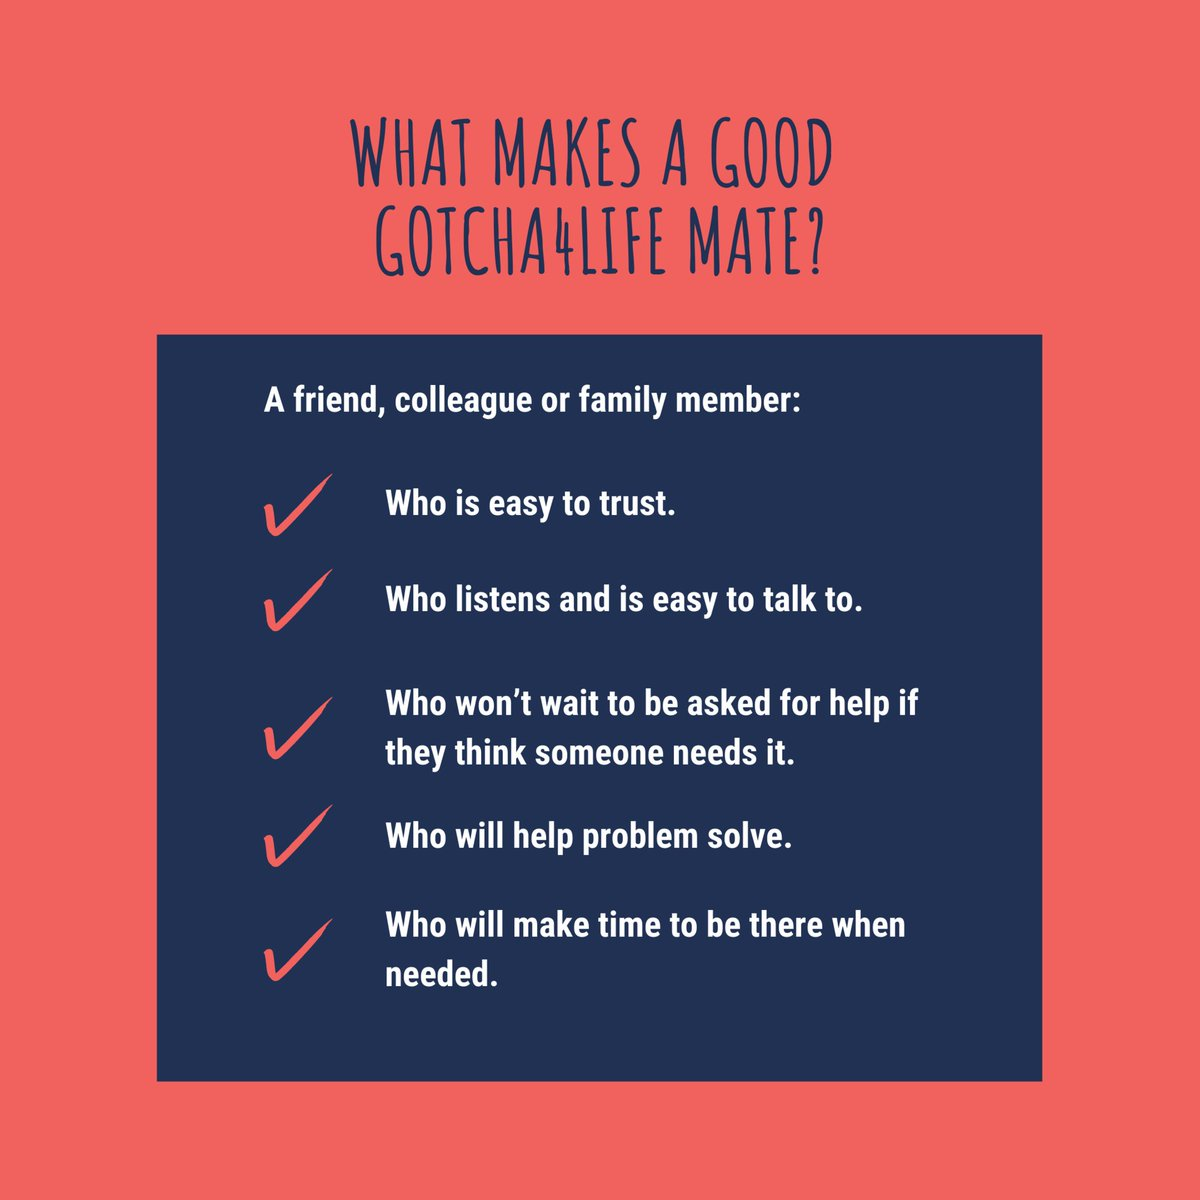 When identifying your #Gotcha4Life Mate, look for these characteristics. After you become a Gotcha4Life Mate, practice these values to ensure productive, positive mateship. Learn more about the #MindYourMate pledge today!  . #mentalfitness #mentalhealth